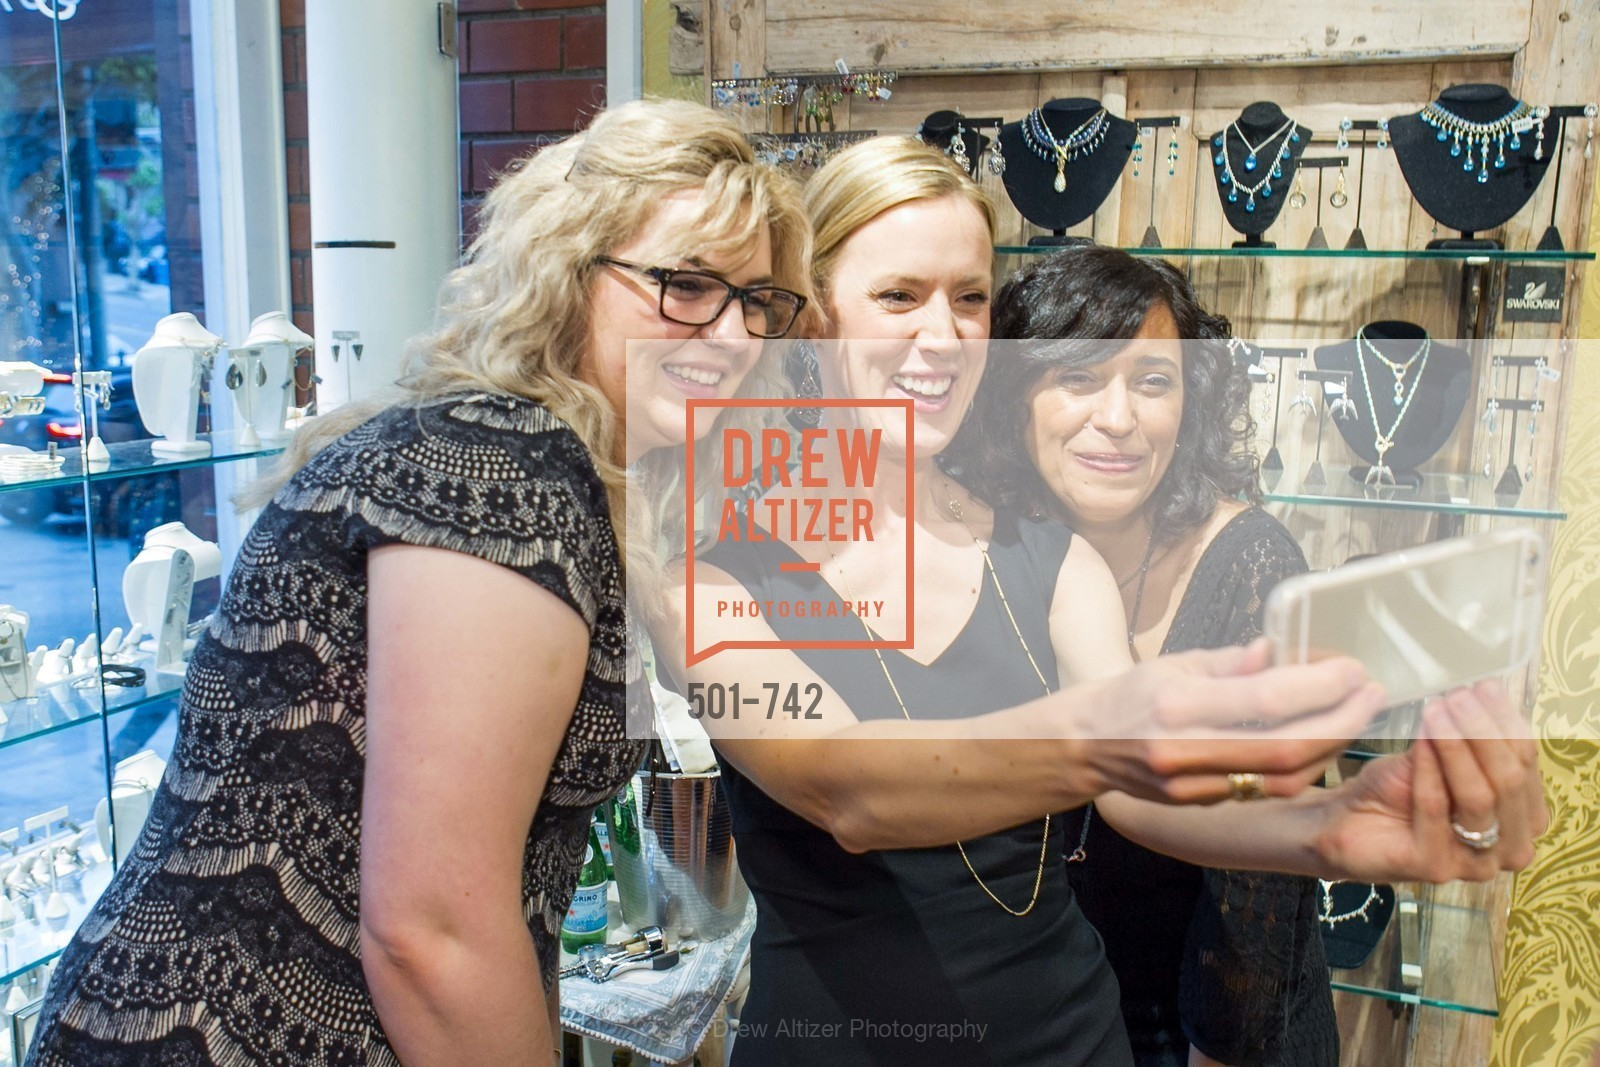 Brenda Belitskus, Nikki Ryan, Karina Lamhe, LUXETIGERS & GALLERY OF JEWELS Benefit for Dress for Success, US, May 21st, 2015,Drew Altizer, Drew Altizer Photography, full-service event agency, private events, San Francisco photographer, photographer California